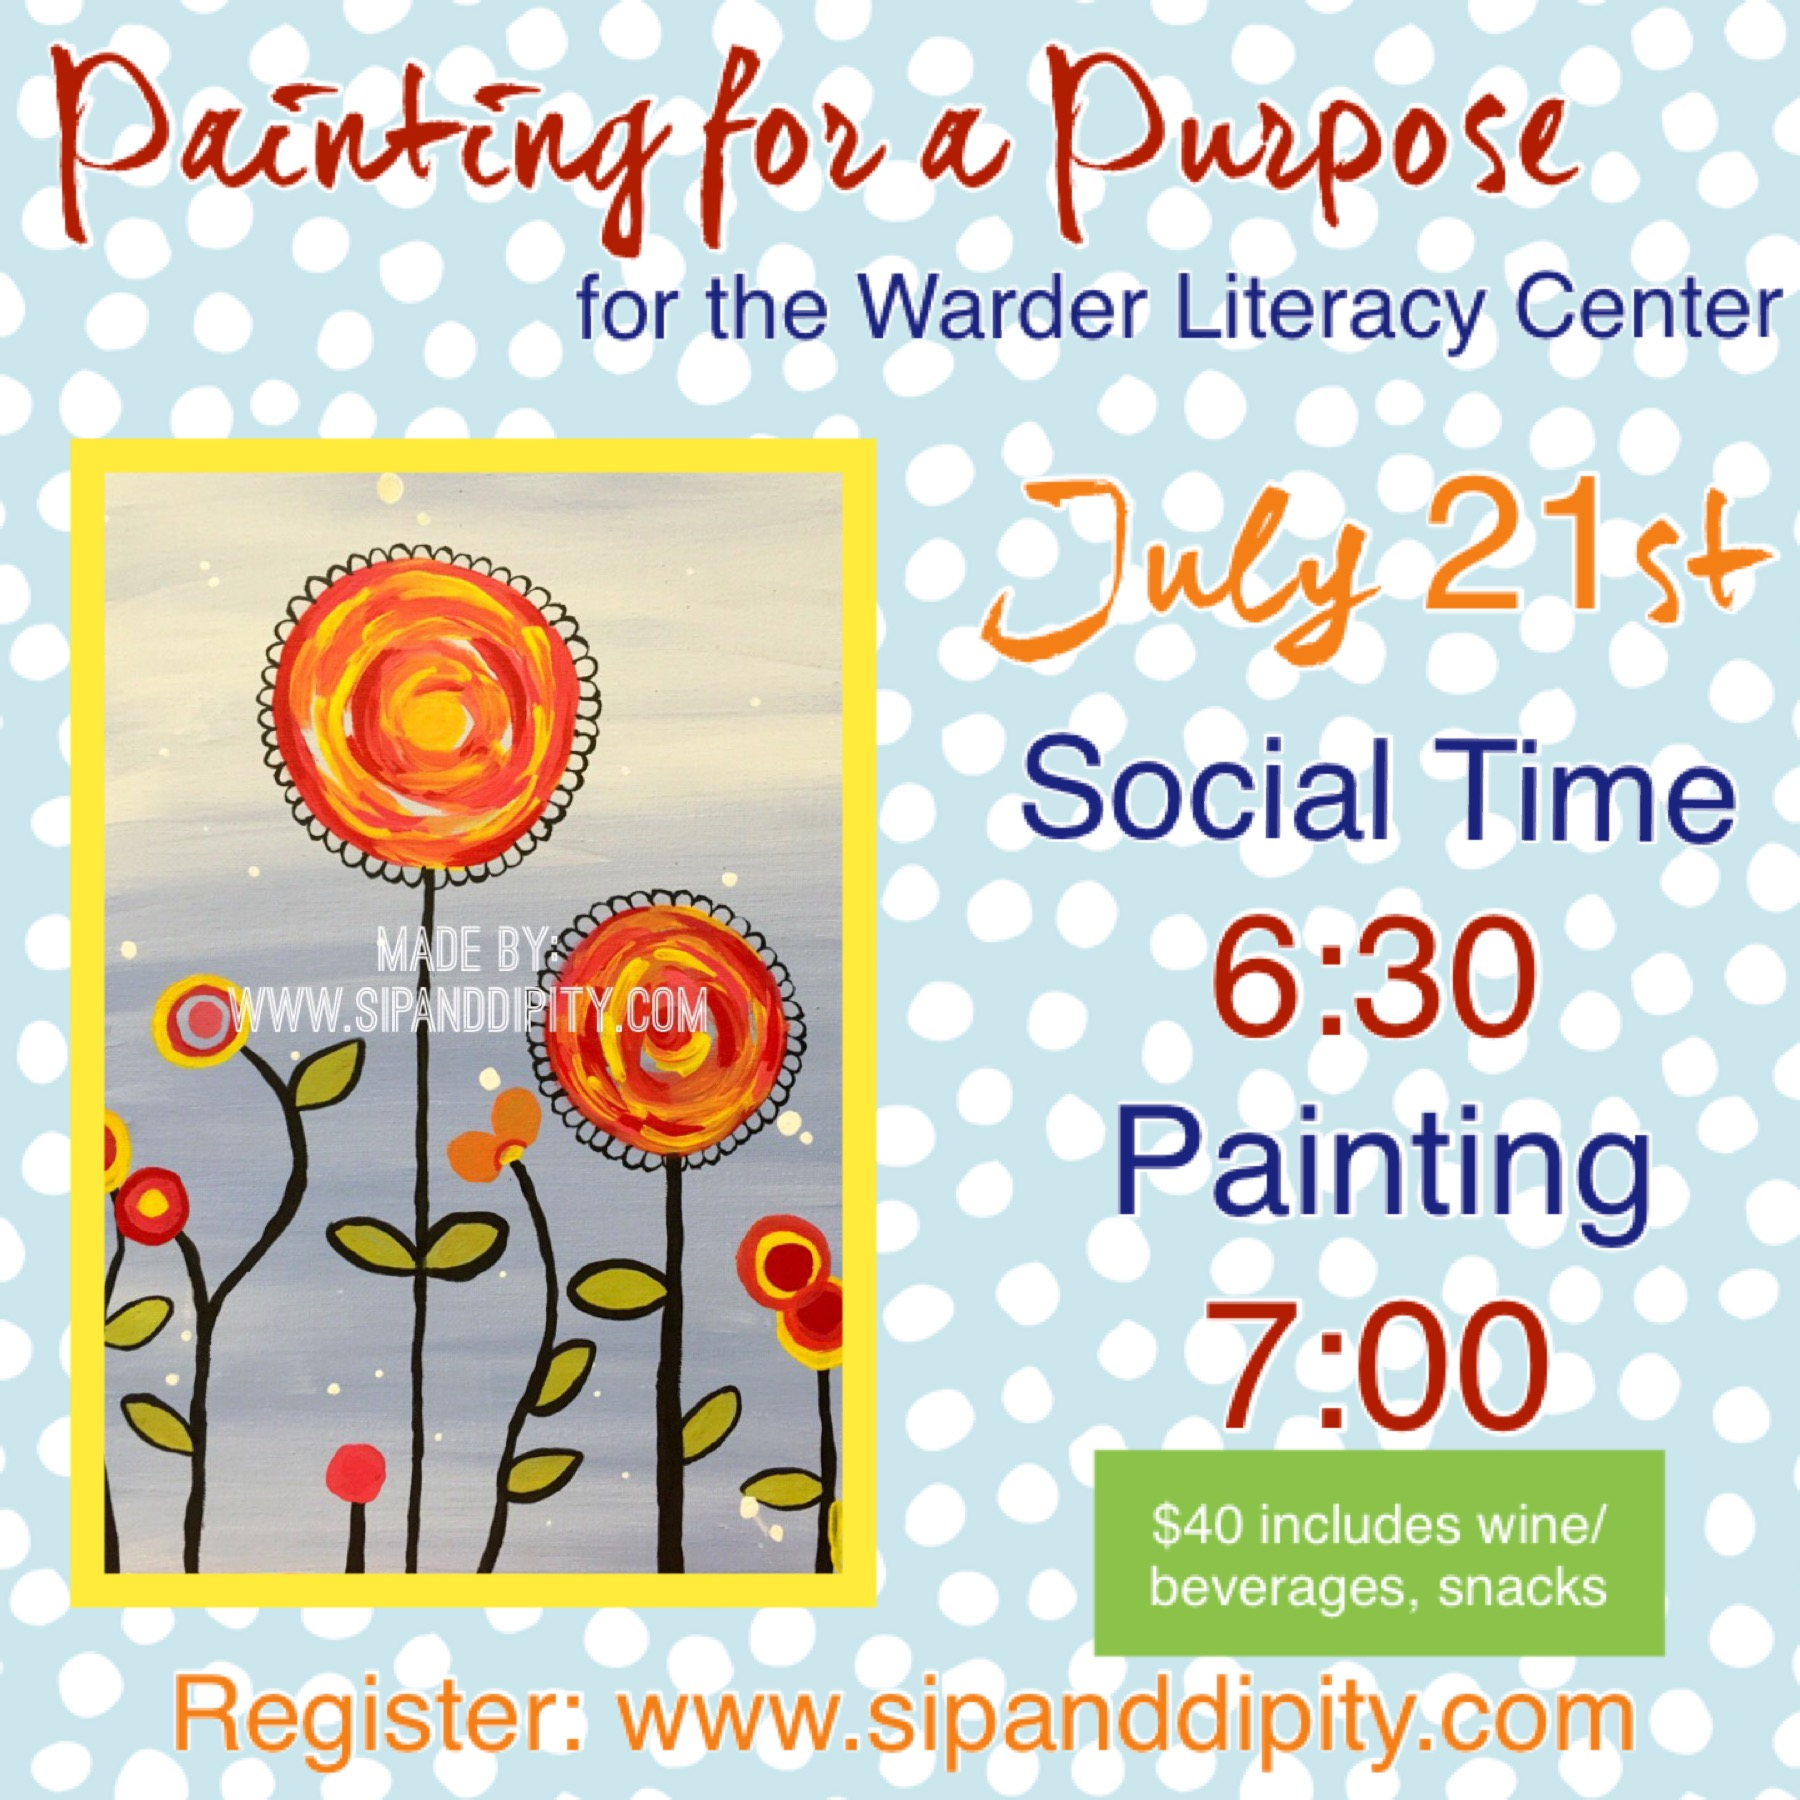 Painting for a Purpose- Warder Literacy Center